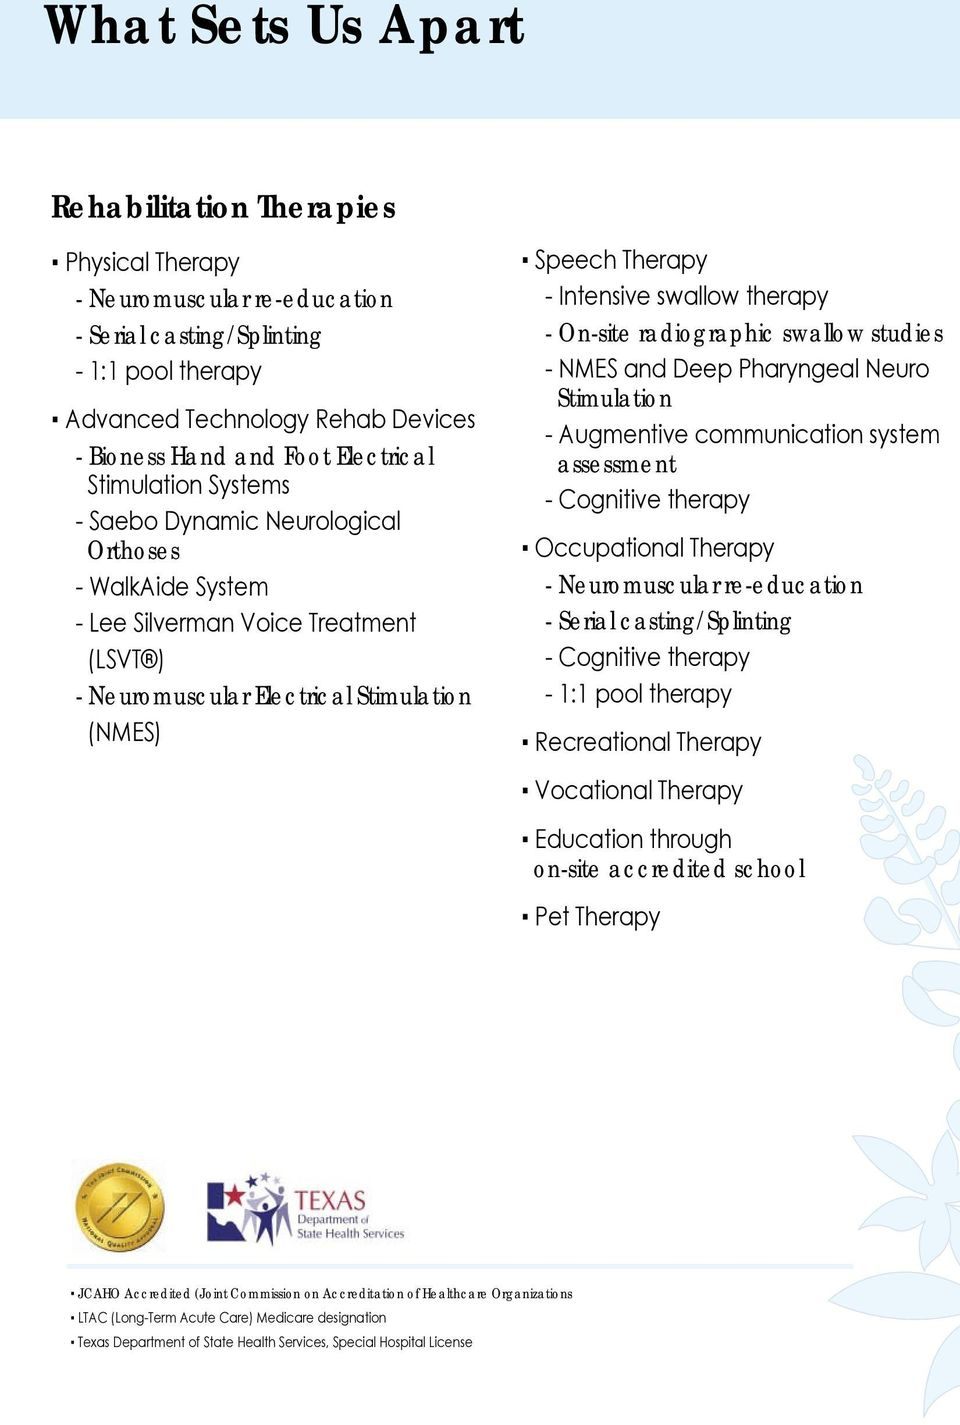 swallow therapy - On-site radiographic swallow studies - NMES and Deep Pharyngeal Neuro Stimulation - Augmentive communication system assessment - Cognitive therapy Occupational Therapy -